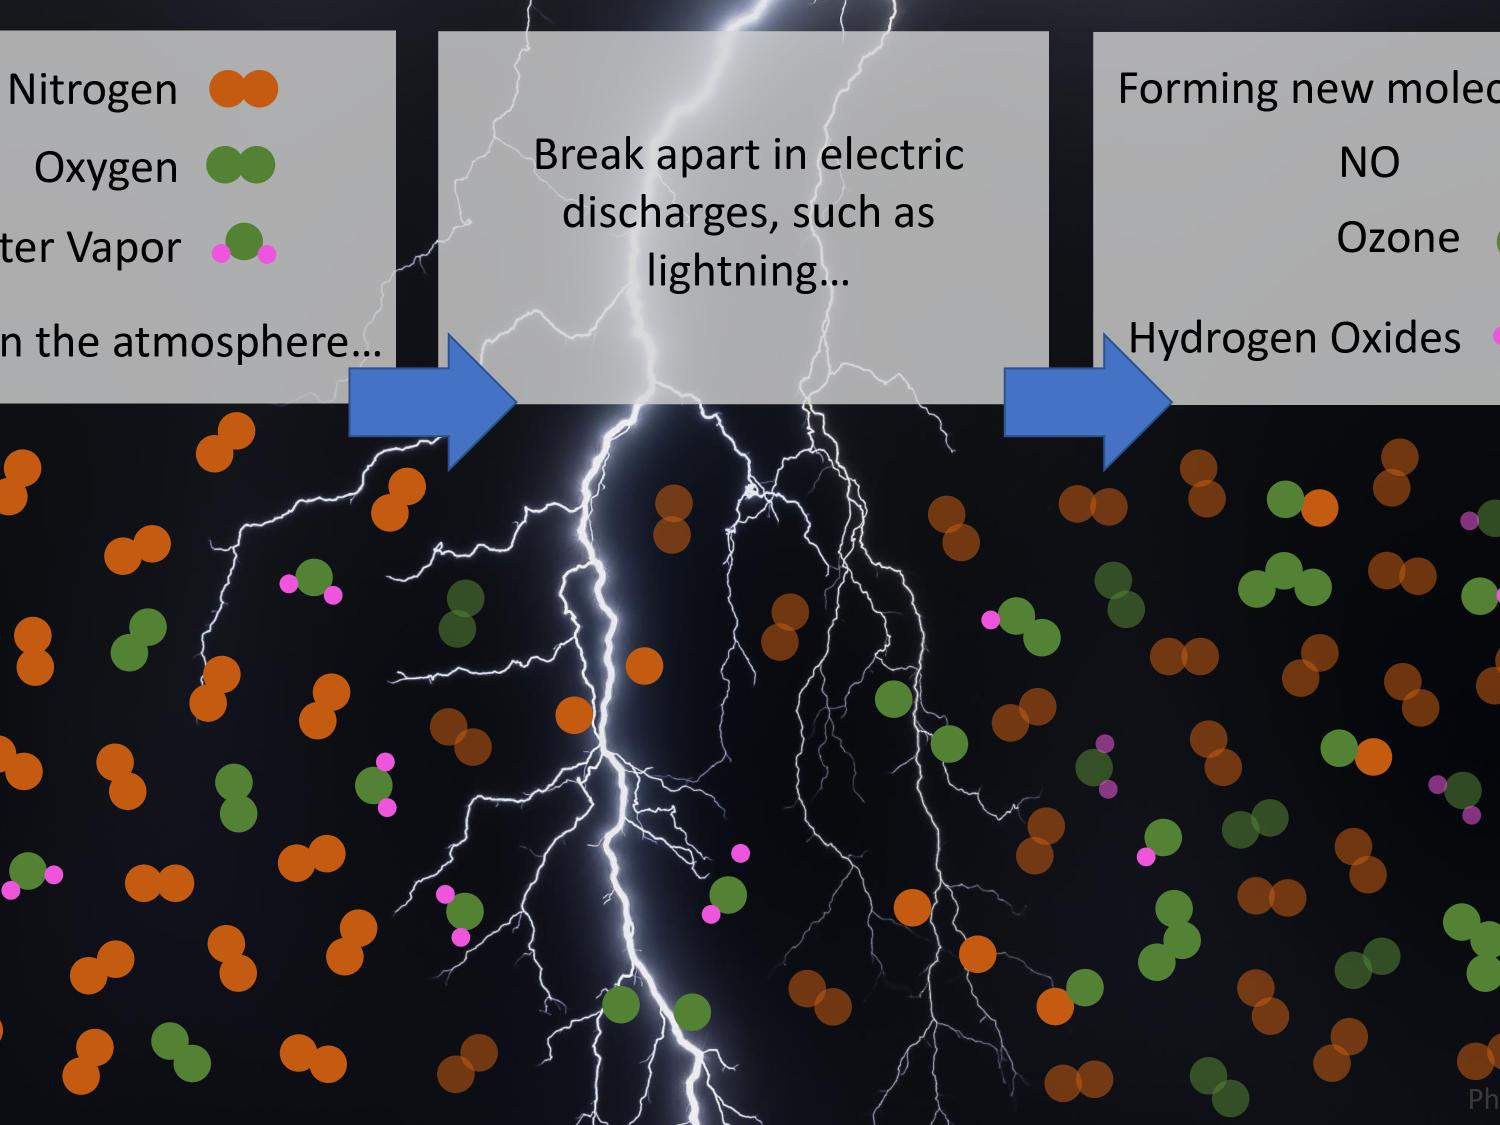 A lightning strike in the center shown spliting oxygen and nitrogen molecules and creating hydroxy and hydroperoxyl radicals